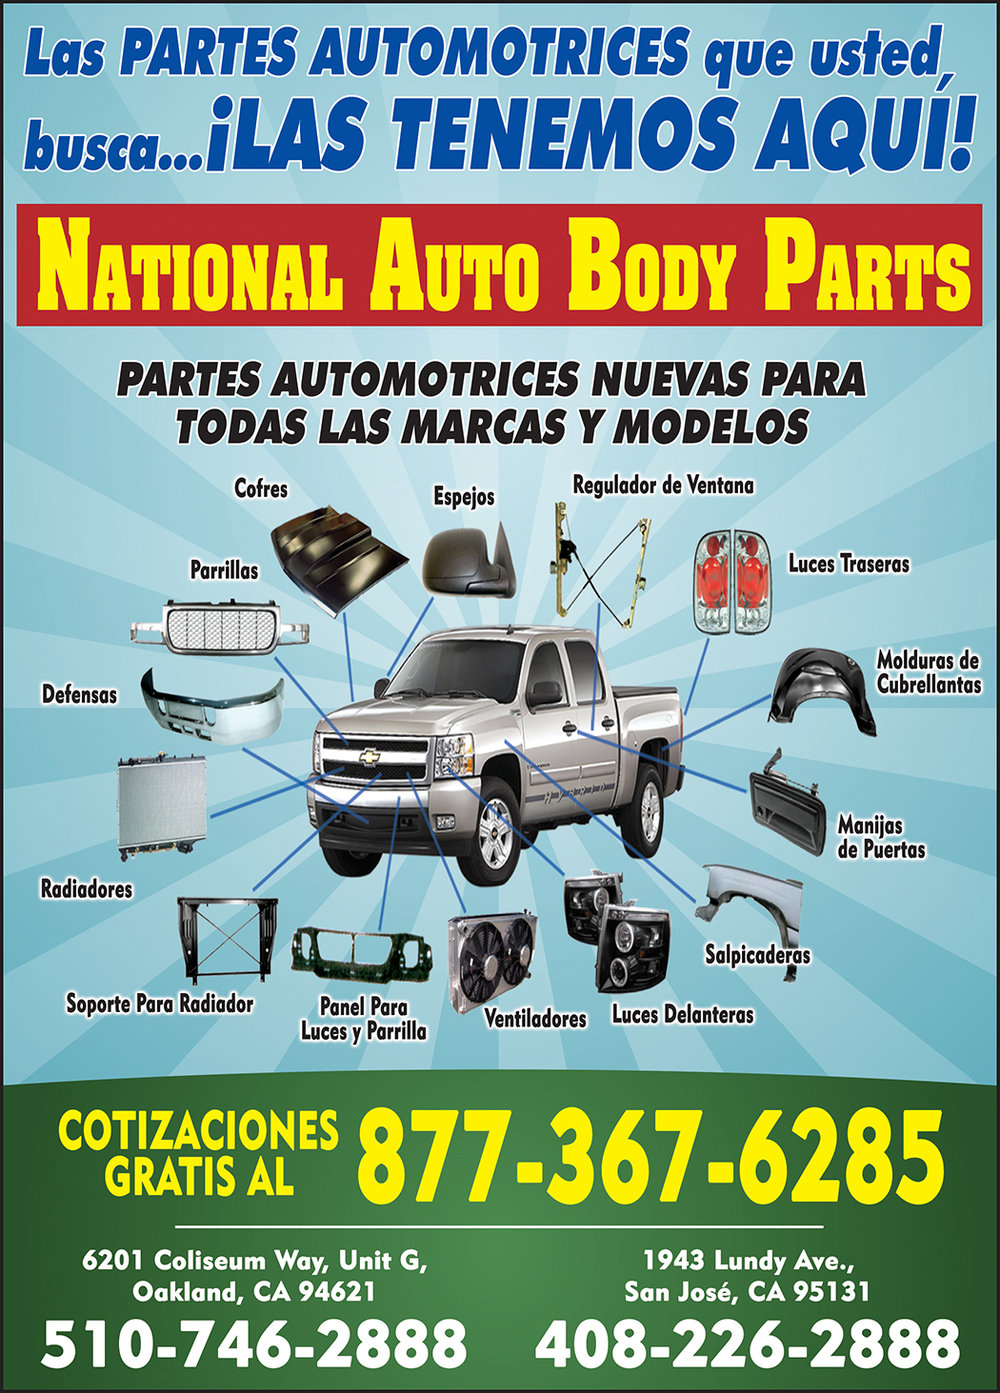 National Auto Body Parts 1 PAG Agosto 2018 copy.jpg